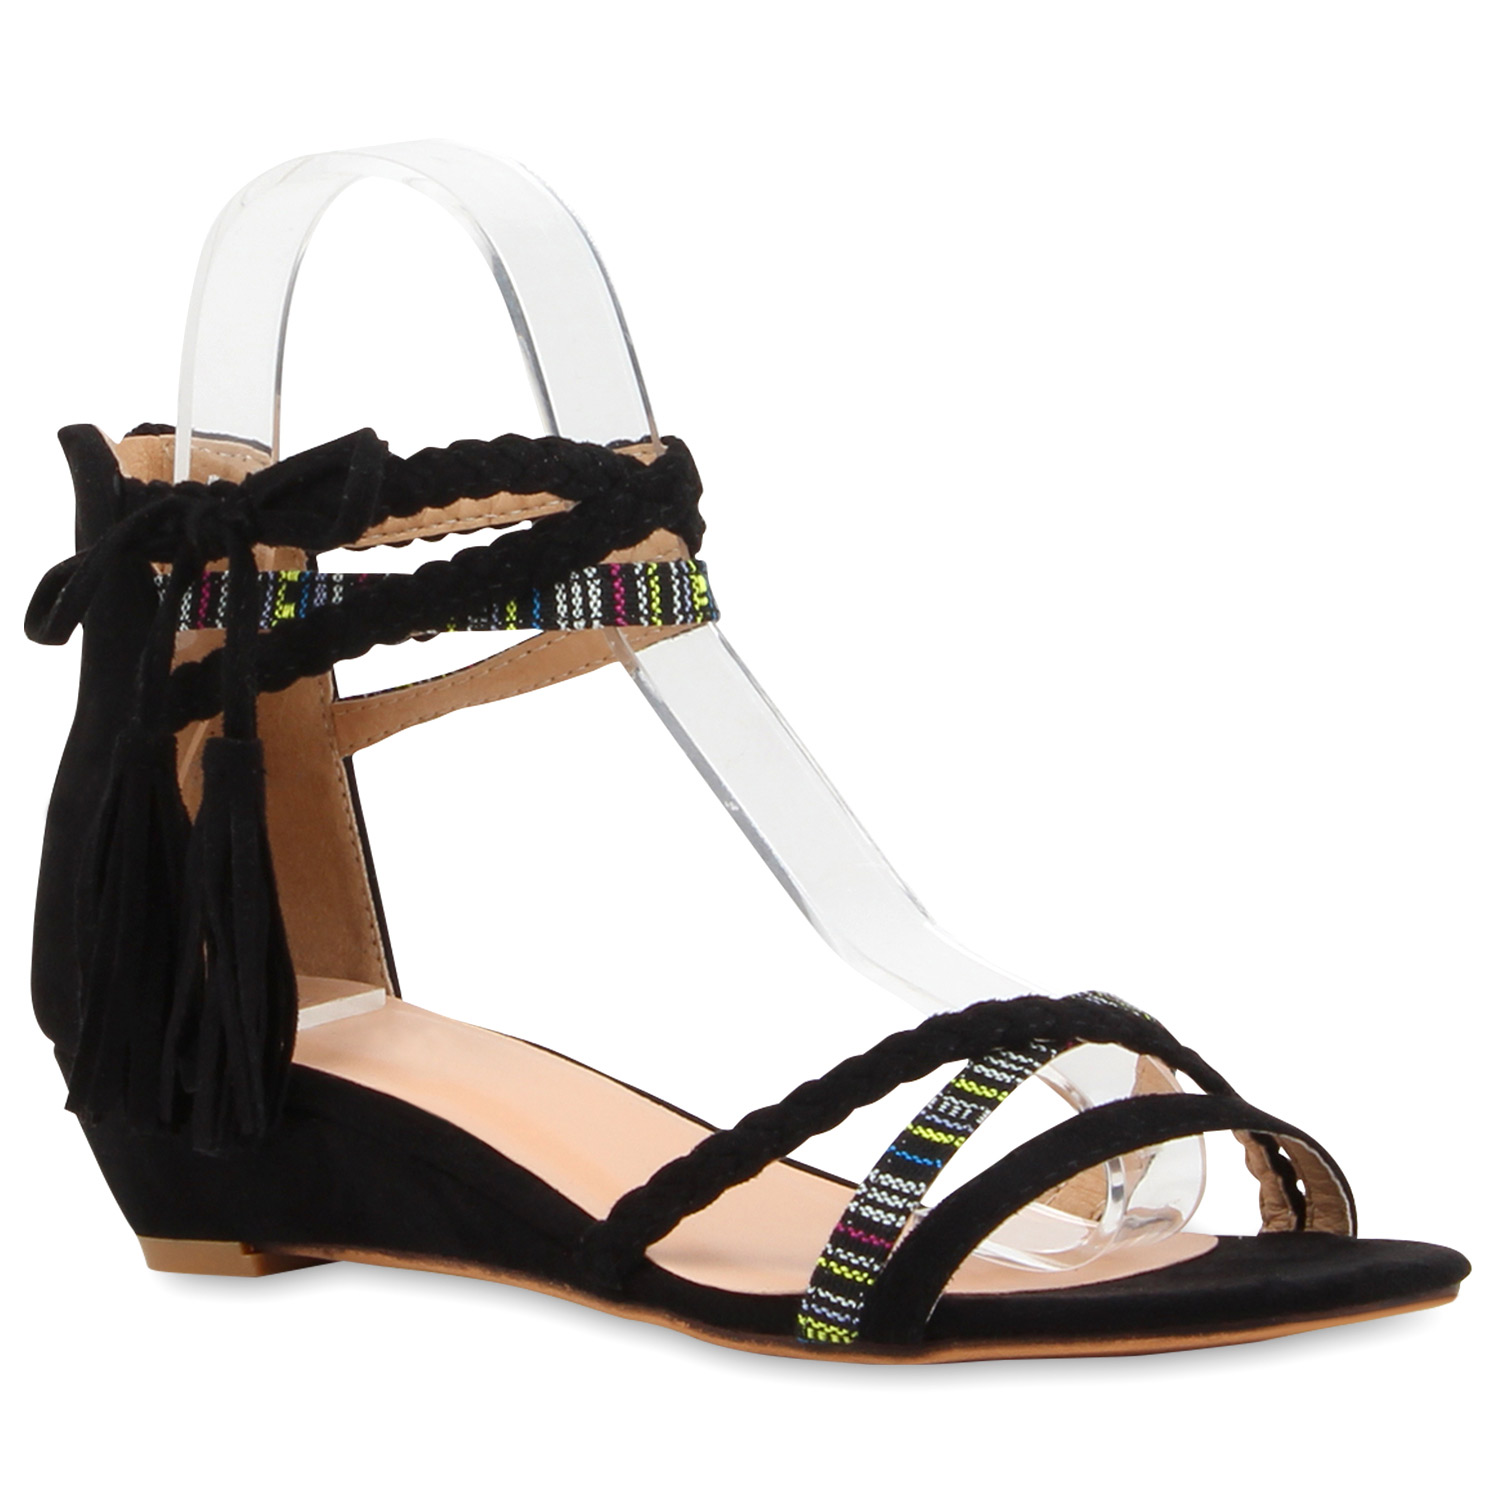 damen sandalen strass riemchensandalen flats sommerschuhe 816907 schuhe ebay. Black Bedroom Furniture Sets. Home Design Ideas